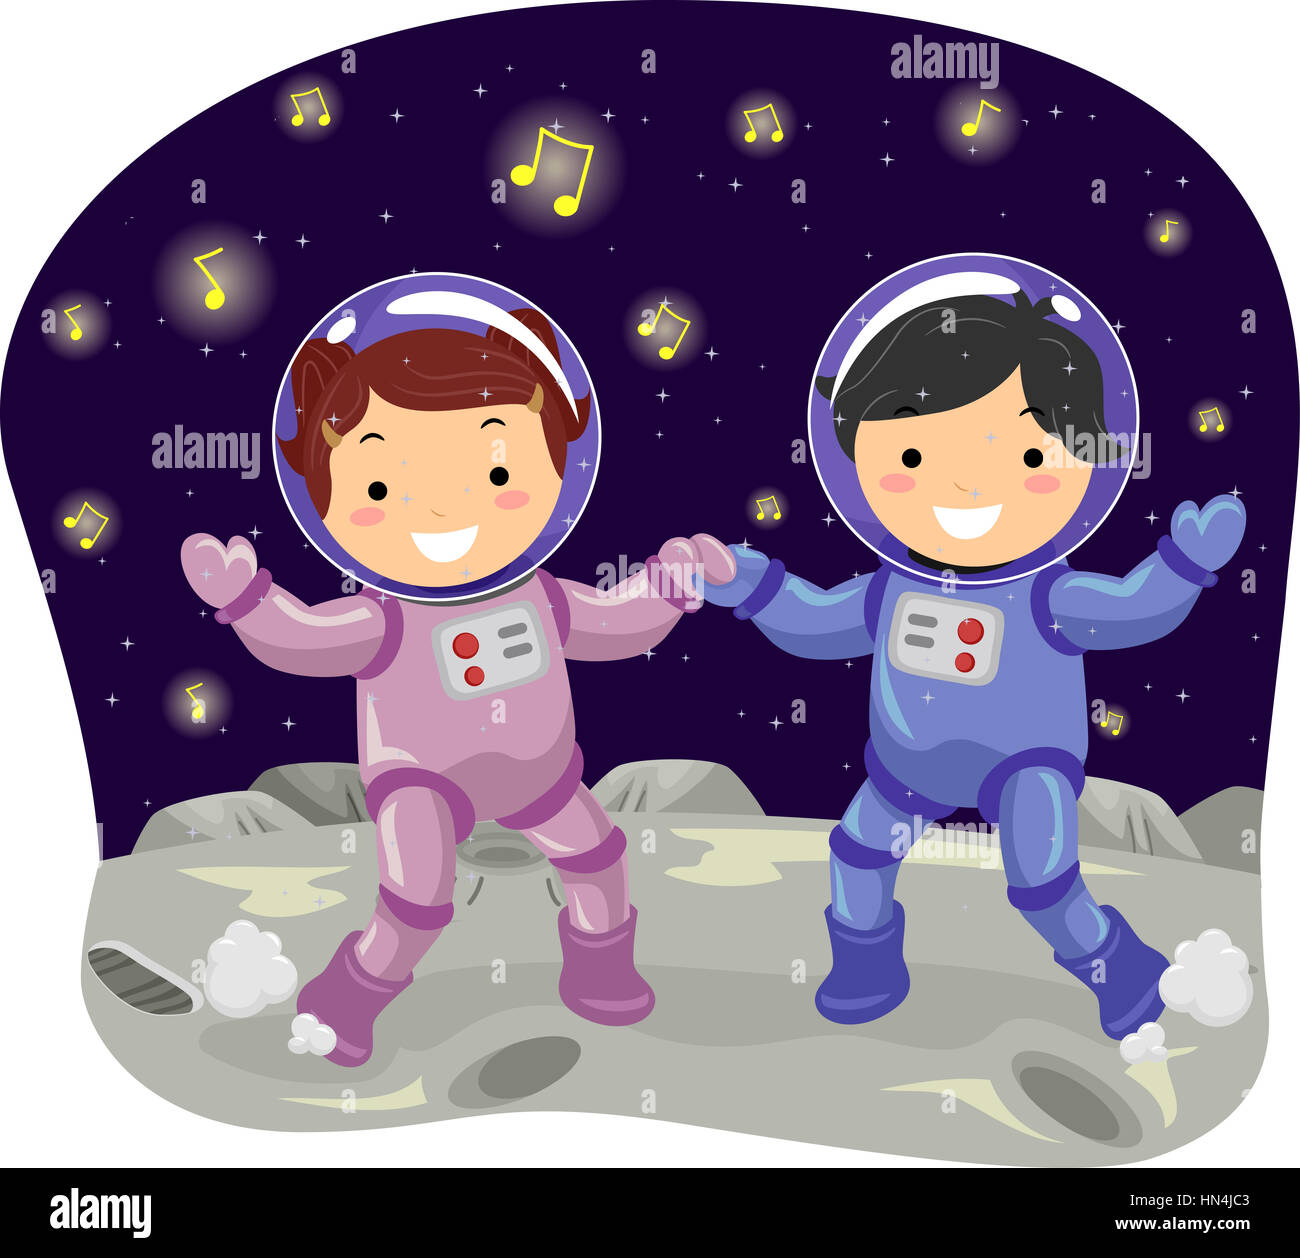 space suits for the moon - photo #34